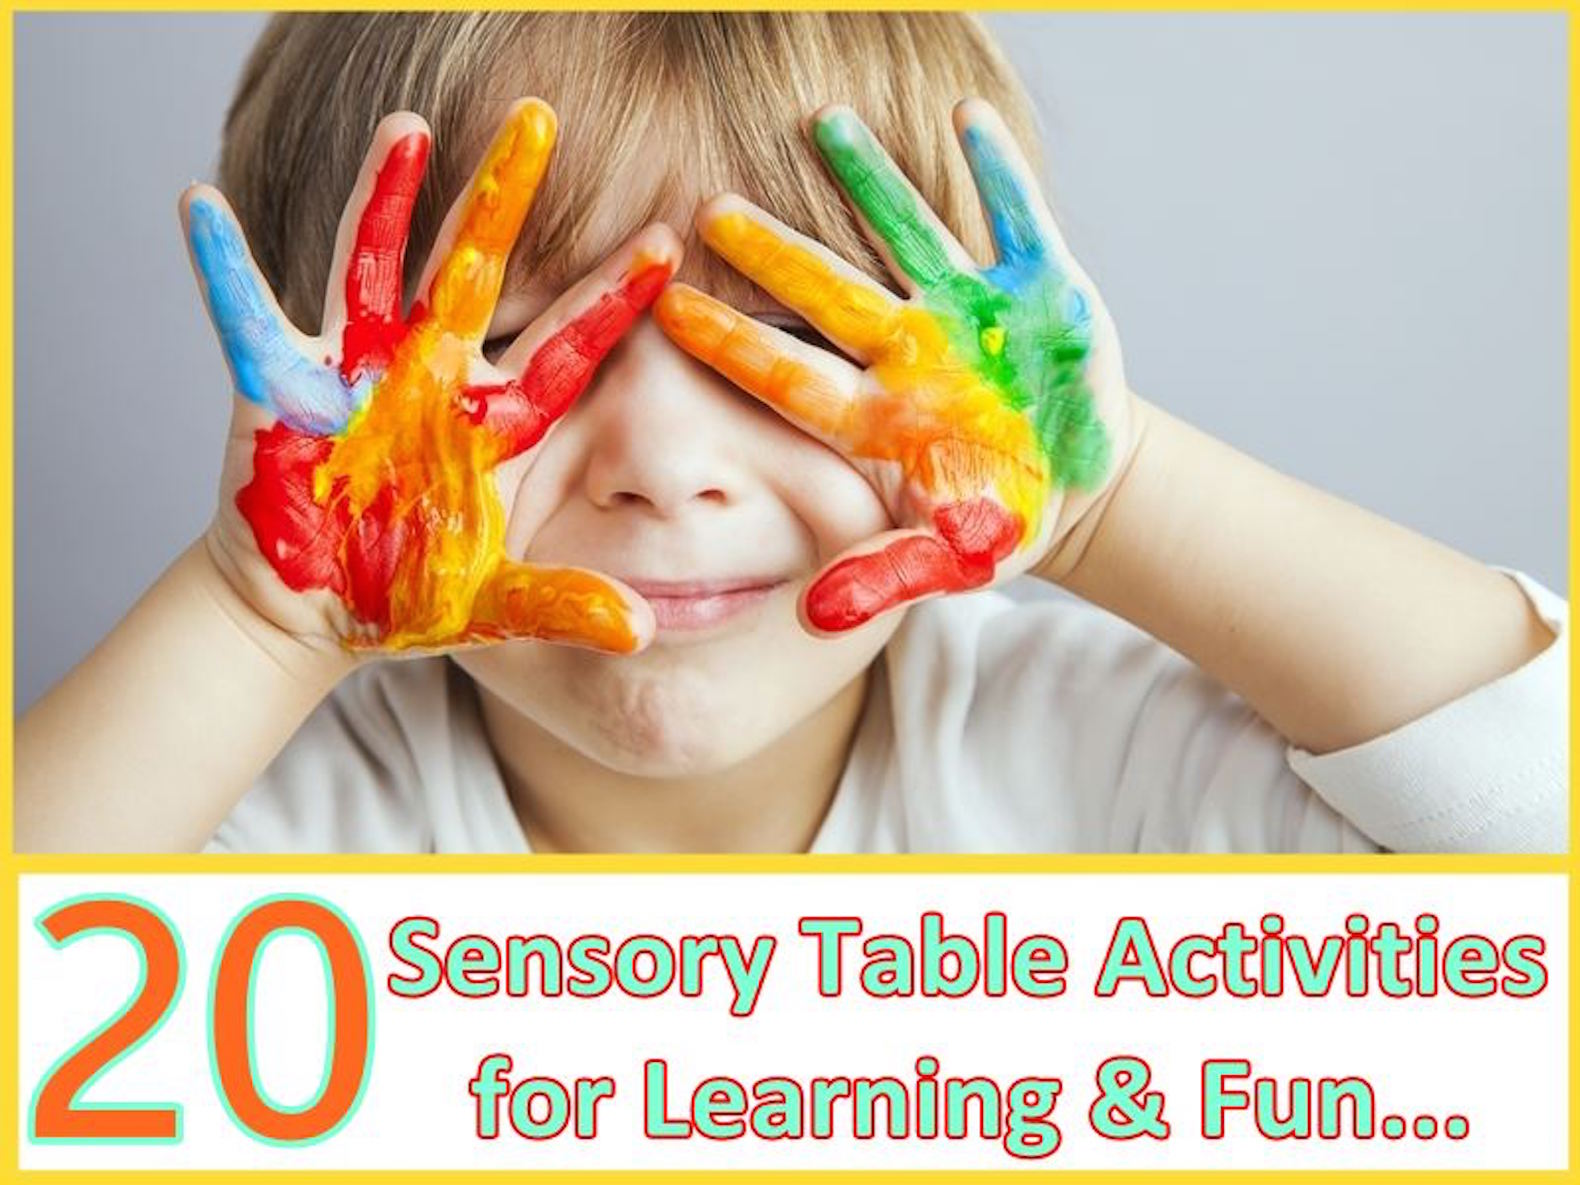 20 sensory table activities that offer creative ways to teach kids through play